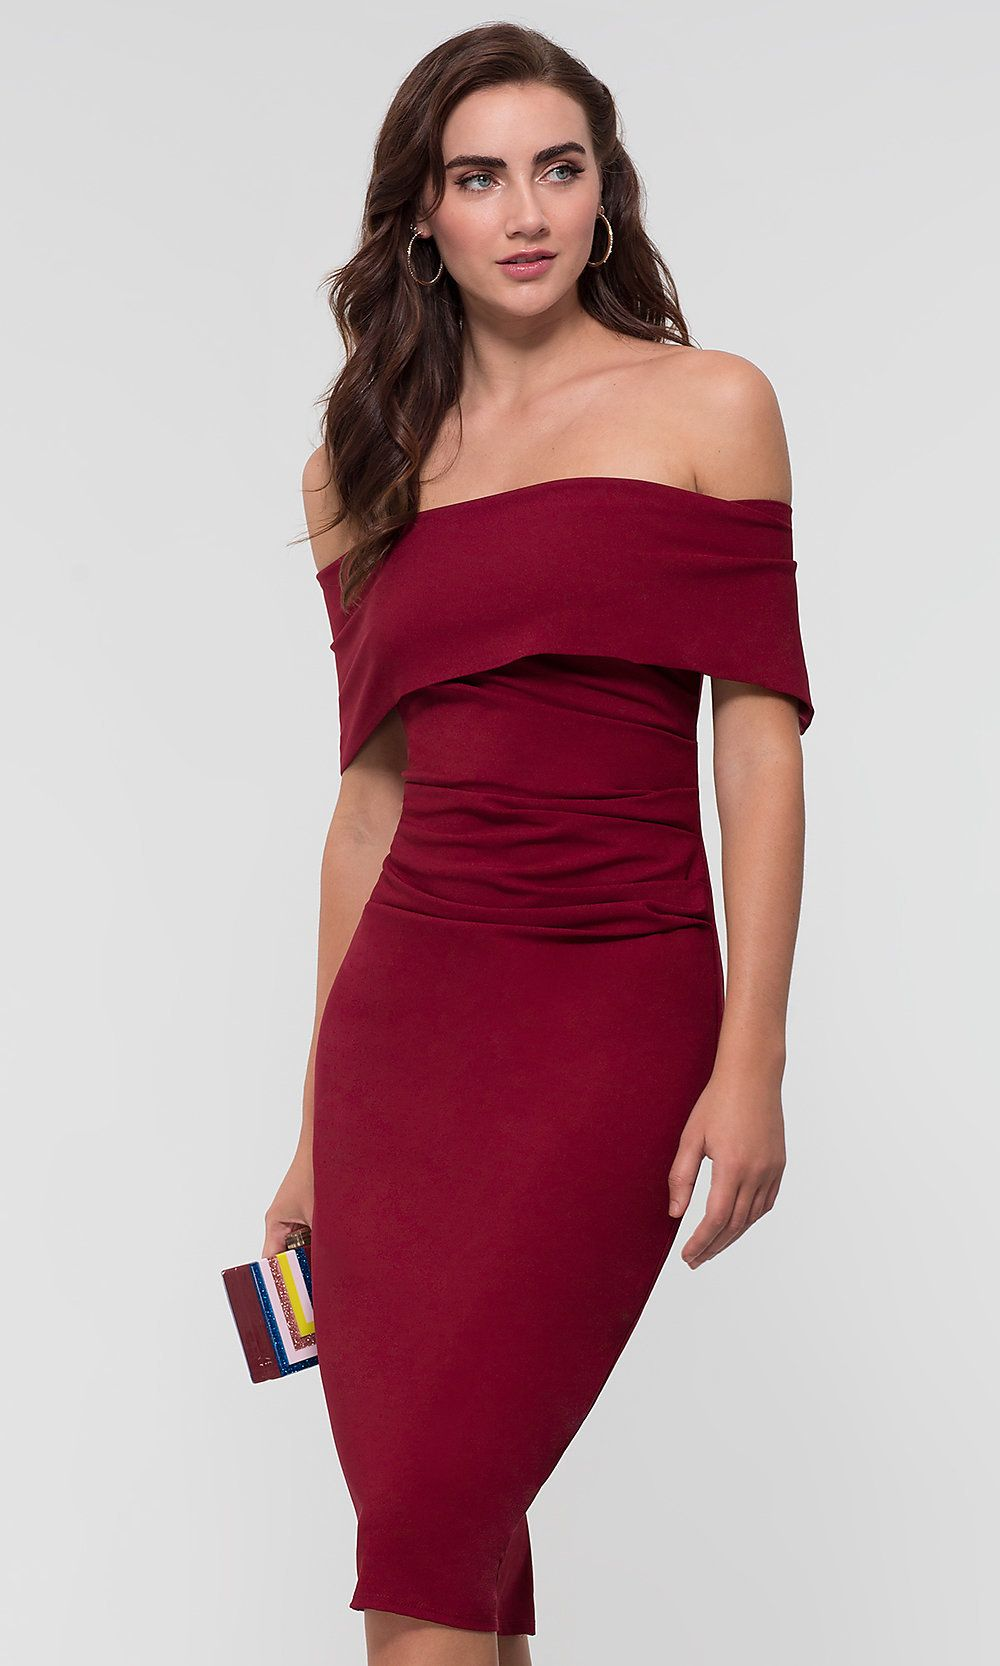 Slim Ruffle Dress By Venus Today S Fashion Item In 2020 Plus Size Wedding Outfits Guest Dresses Wedding Guest Dress [ 1253 x 686 Pixel ]